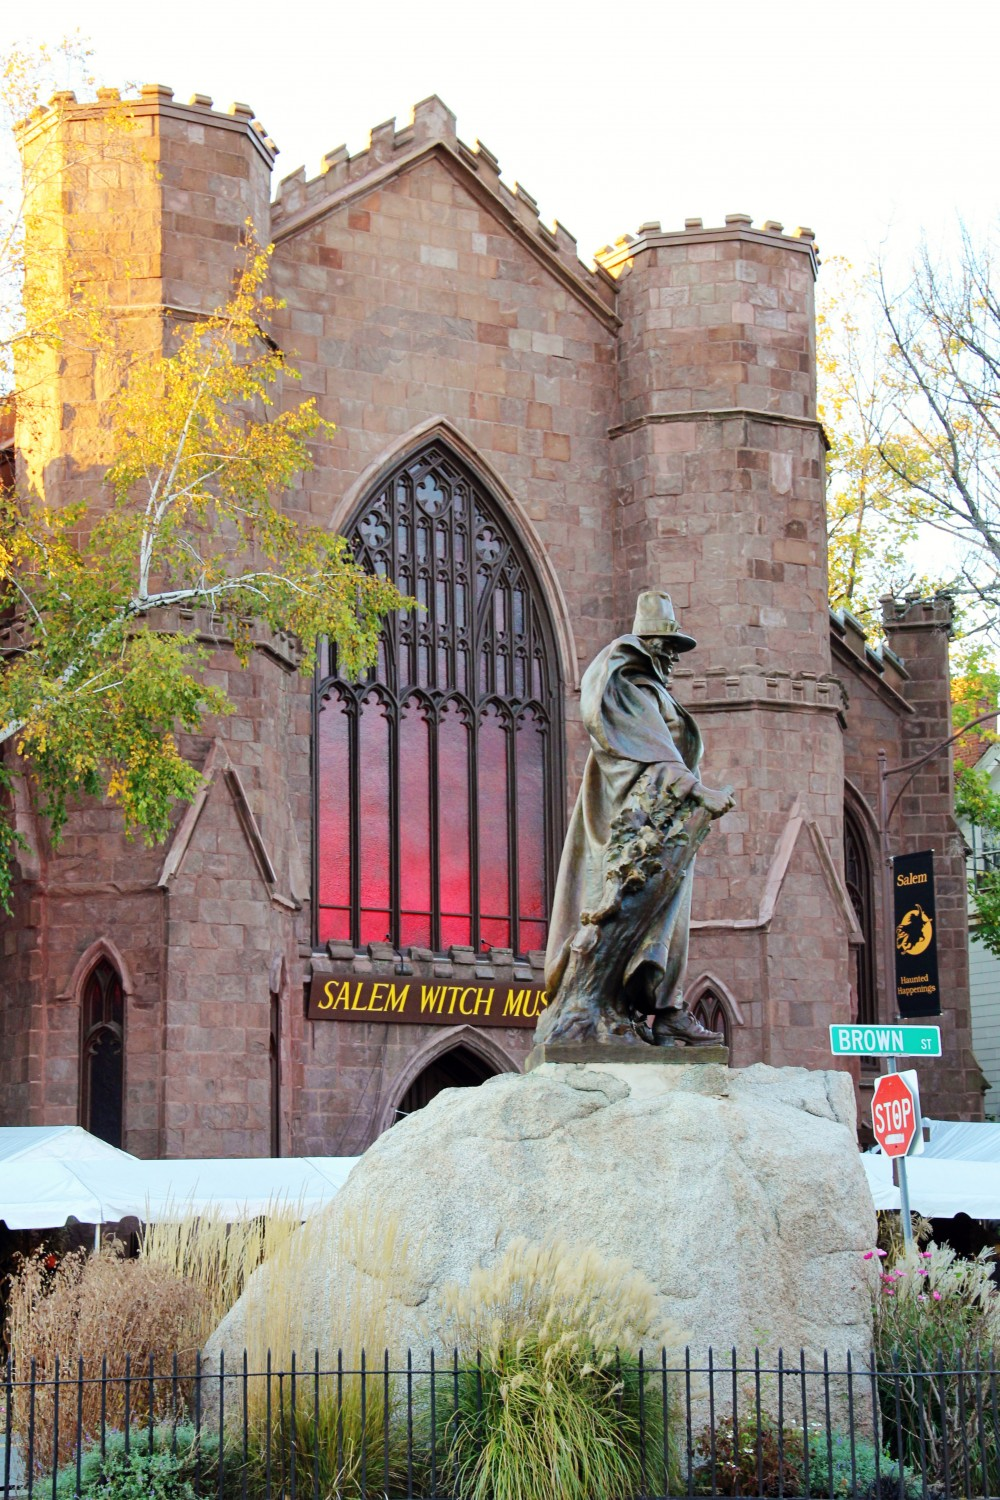 A statue of Roger Conant, the founder of Salem, in front of the Salem Witch Museum. For first time visitors to Salem, this museum will help make the witch trials comprehensible.